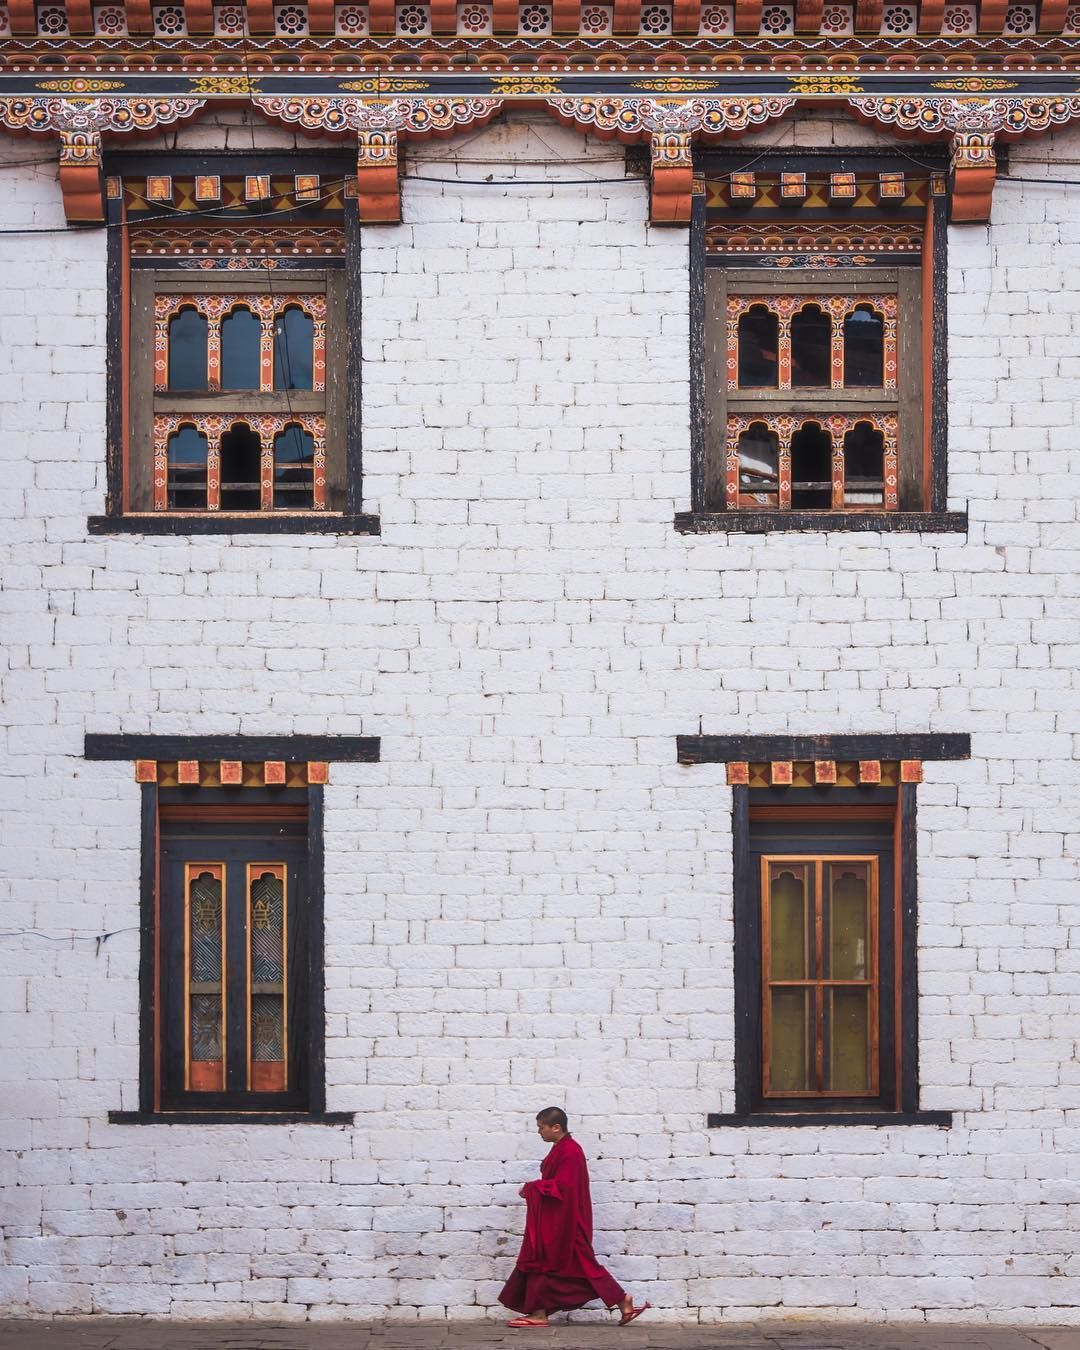 Conor Macneill On Instagram Stride By Thimphu Bhutan As Stride Bys Go This Is One Of My Favourite The Architecture Coupled W King S Viajes The Guardian